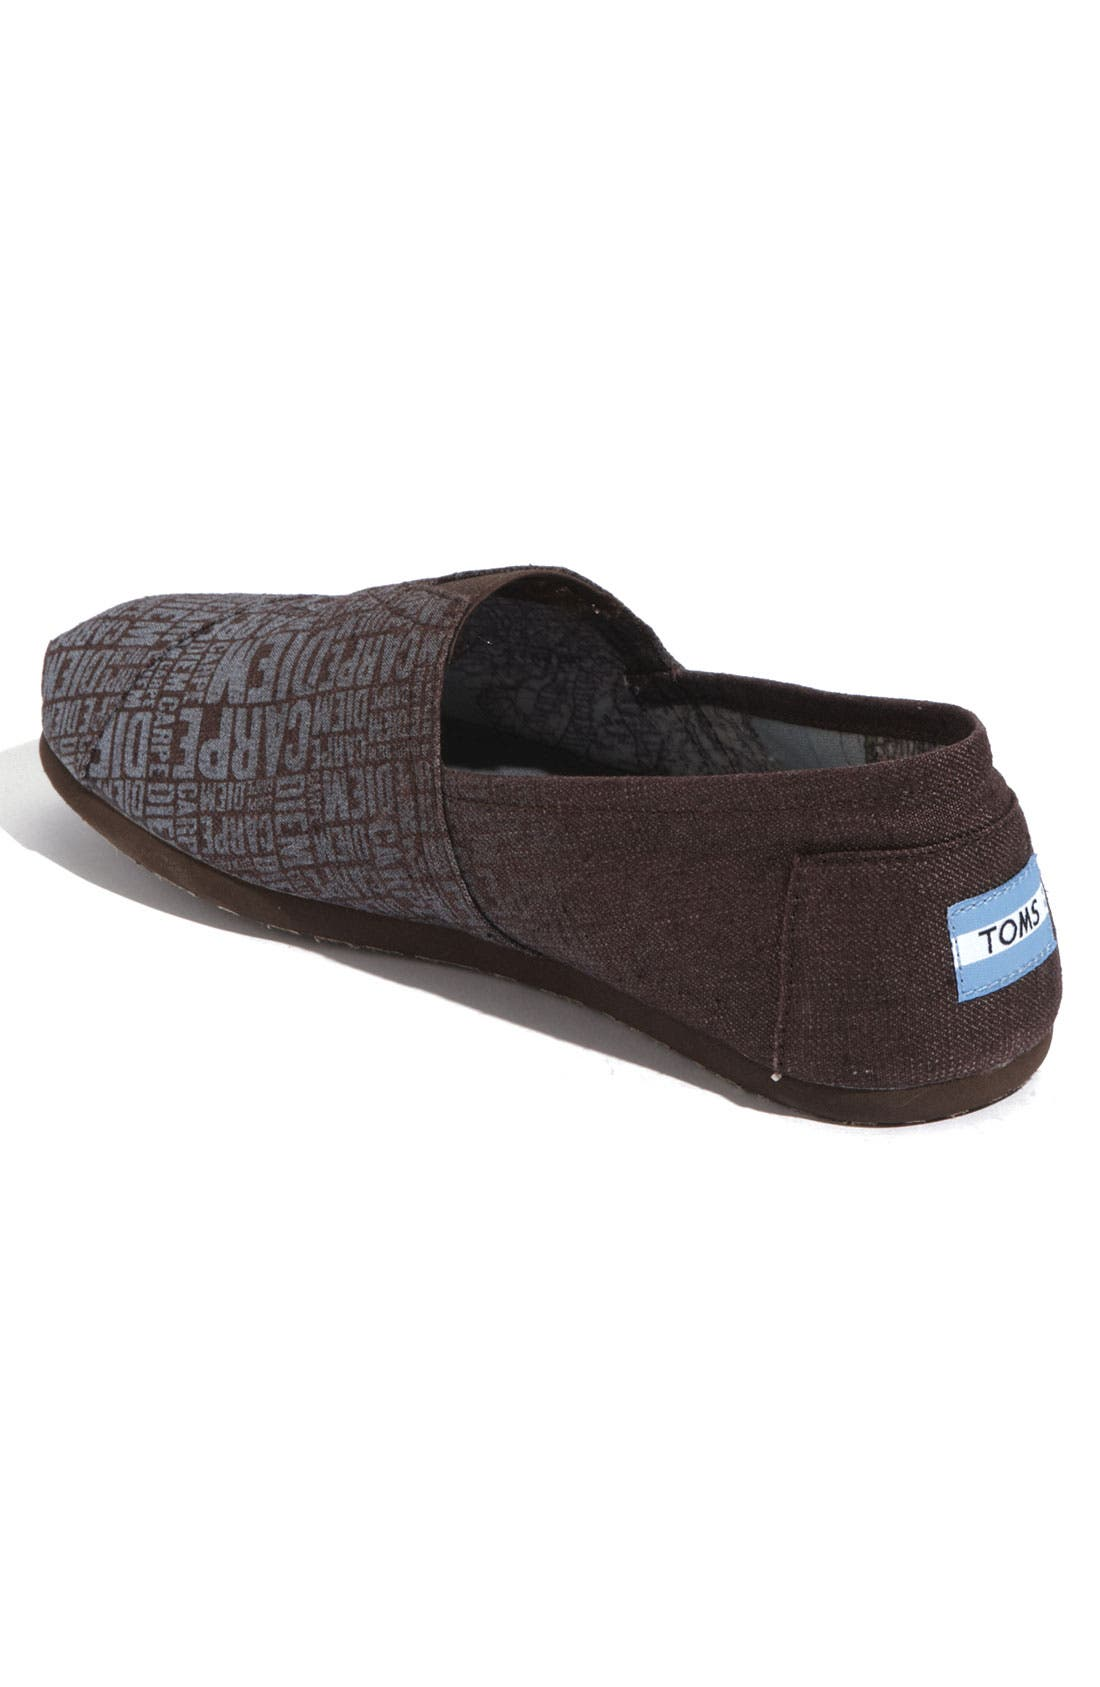 Alternate Image 3  - TOMS 'Classic - Print' Canvas Slip-On (Men)